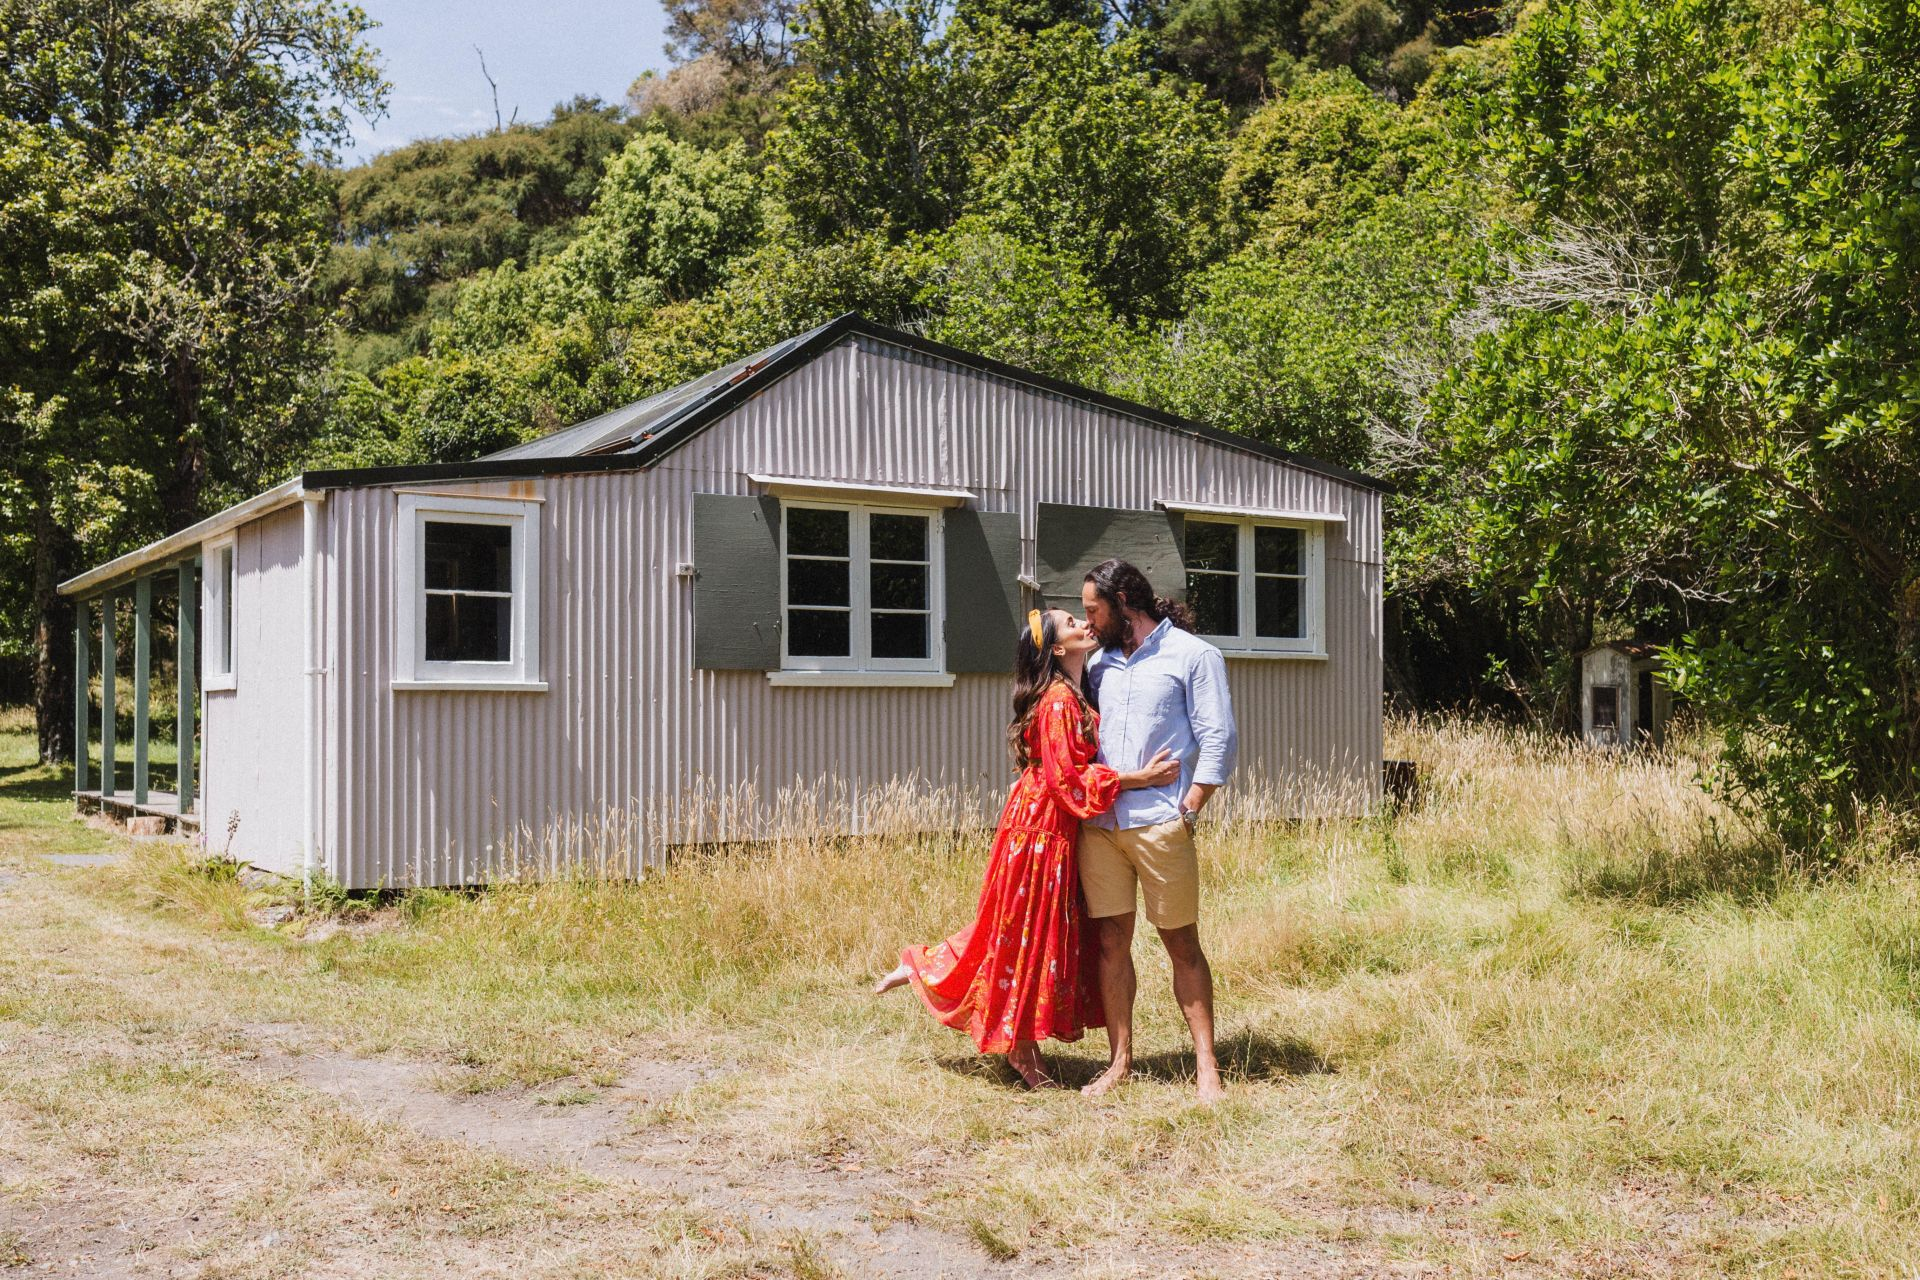 Kawakawa Station – The Purple Hut